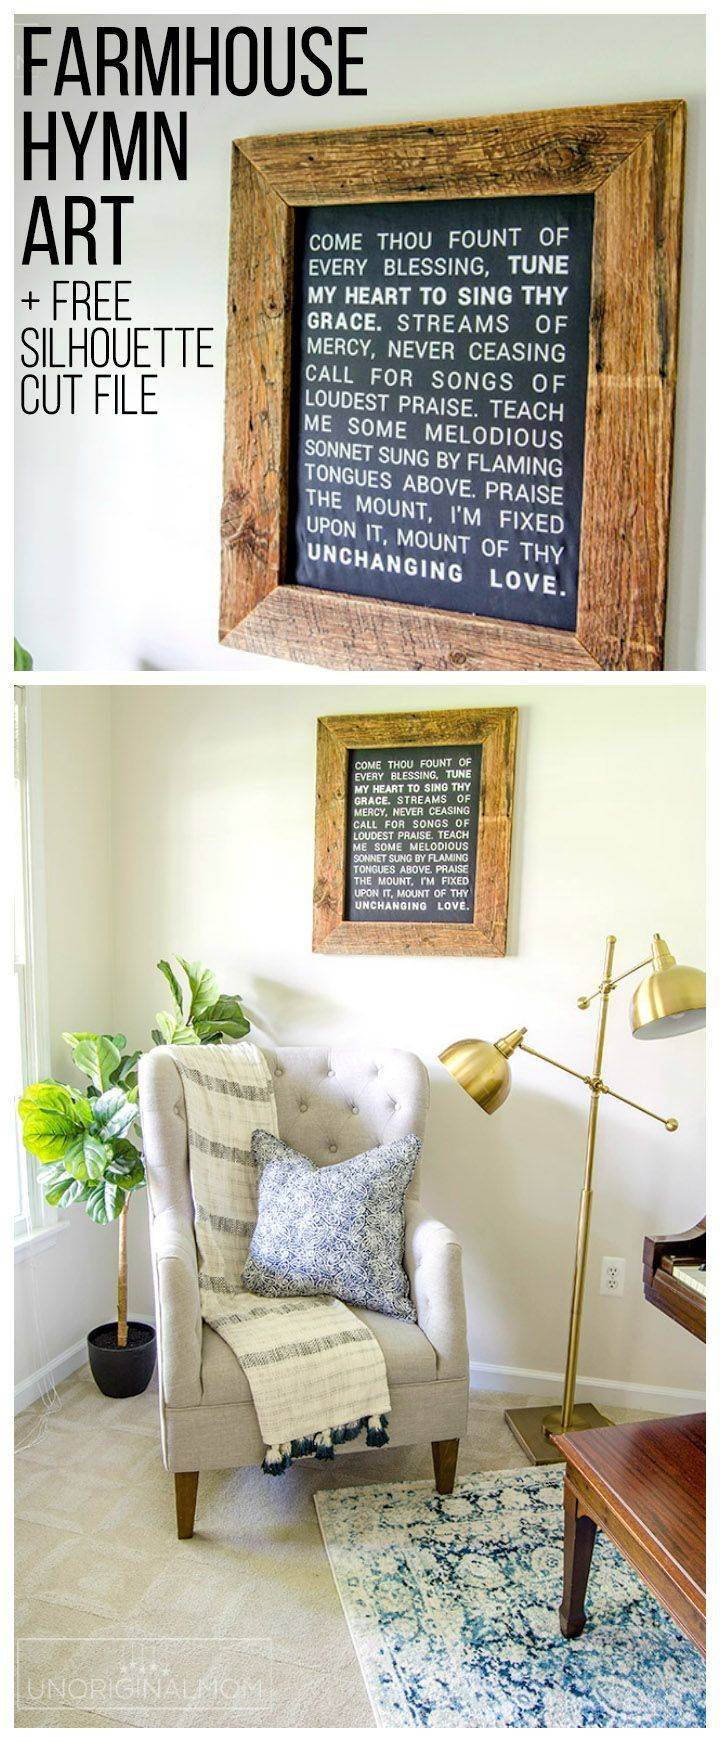 Best 25+ Farmhouse Wall Art Ideas On Pinterest | Living Room Wall In 2018 Farmhouse Wall Art (View 5 of 25)